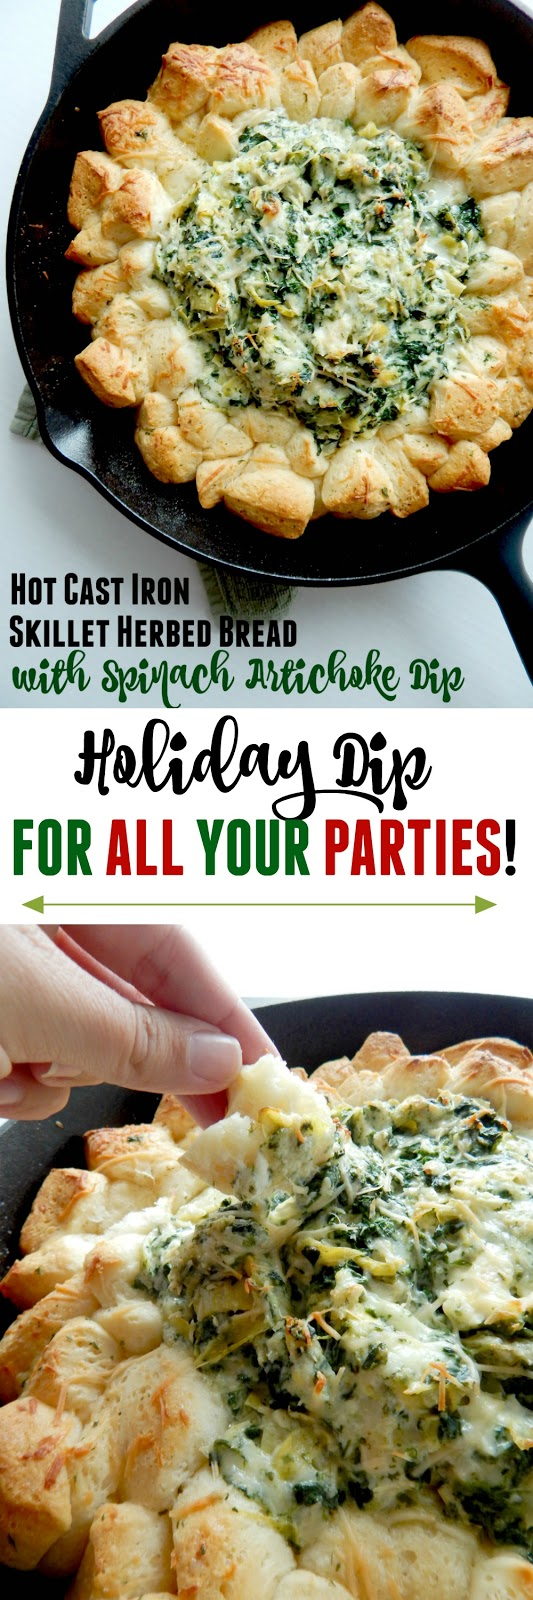 Hot Cast Iron Skillet Herbed Bread with Spinach Artichoke Dip...the #1 holiday appetizer this season!  Bake it off at home and take it to your families Christmas, staff party or any holiday event. (sweetandsavoryfood.com)